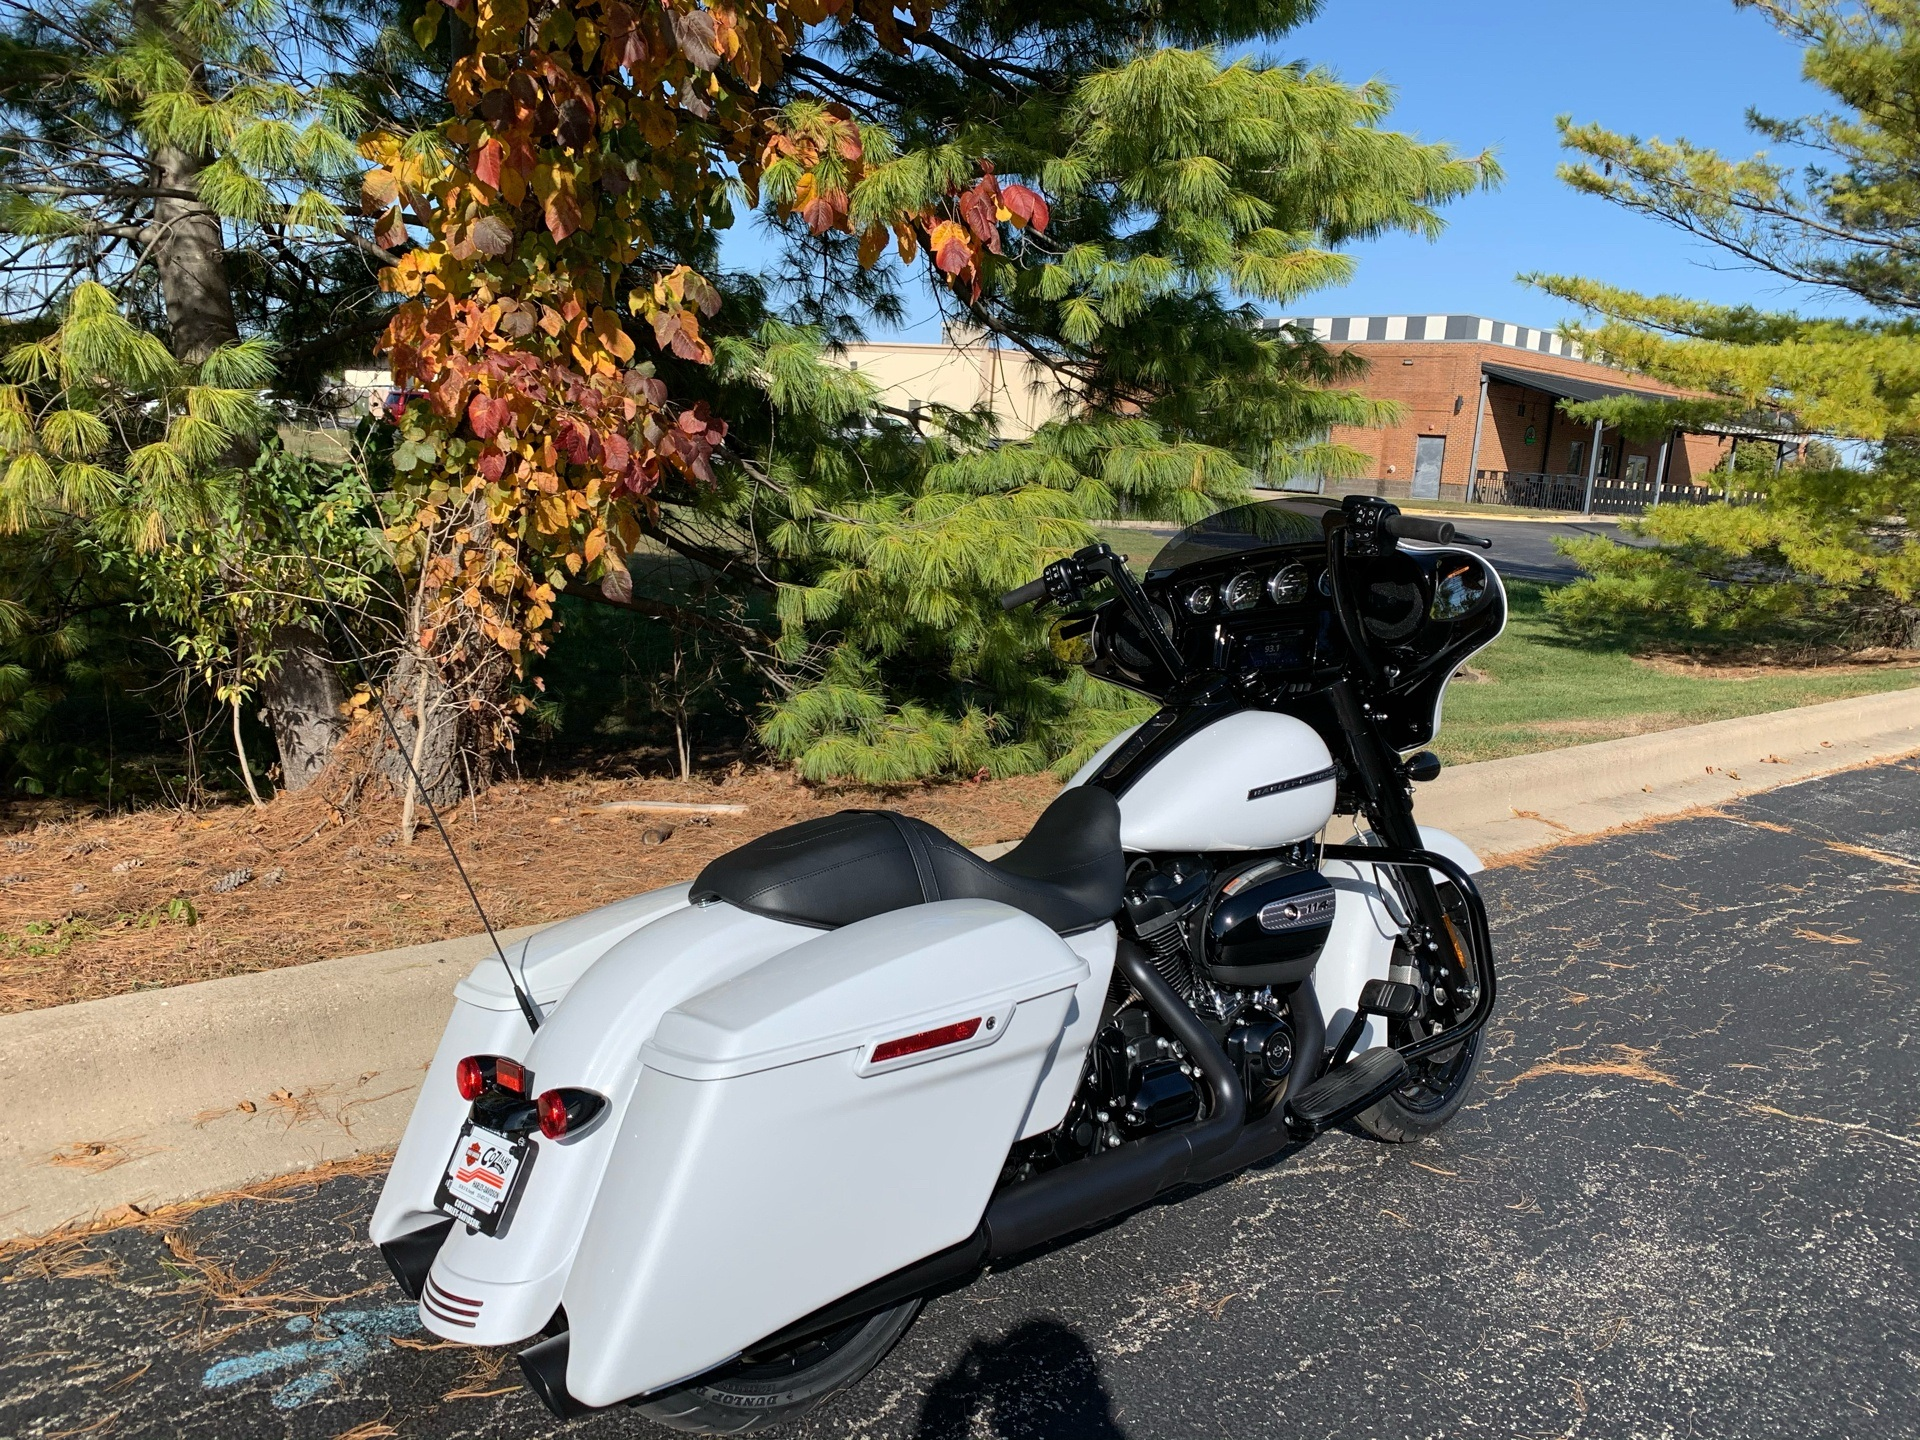 2020 Harley-Davidson Street Glide Special in Forsyth, Illinois - Photo 2